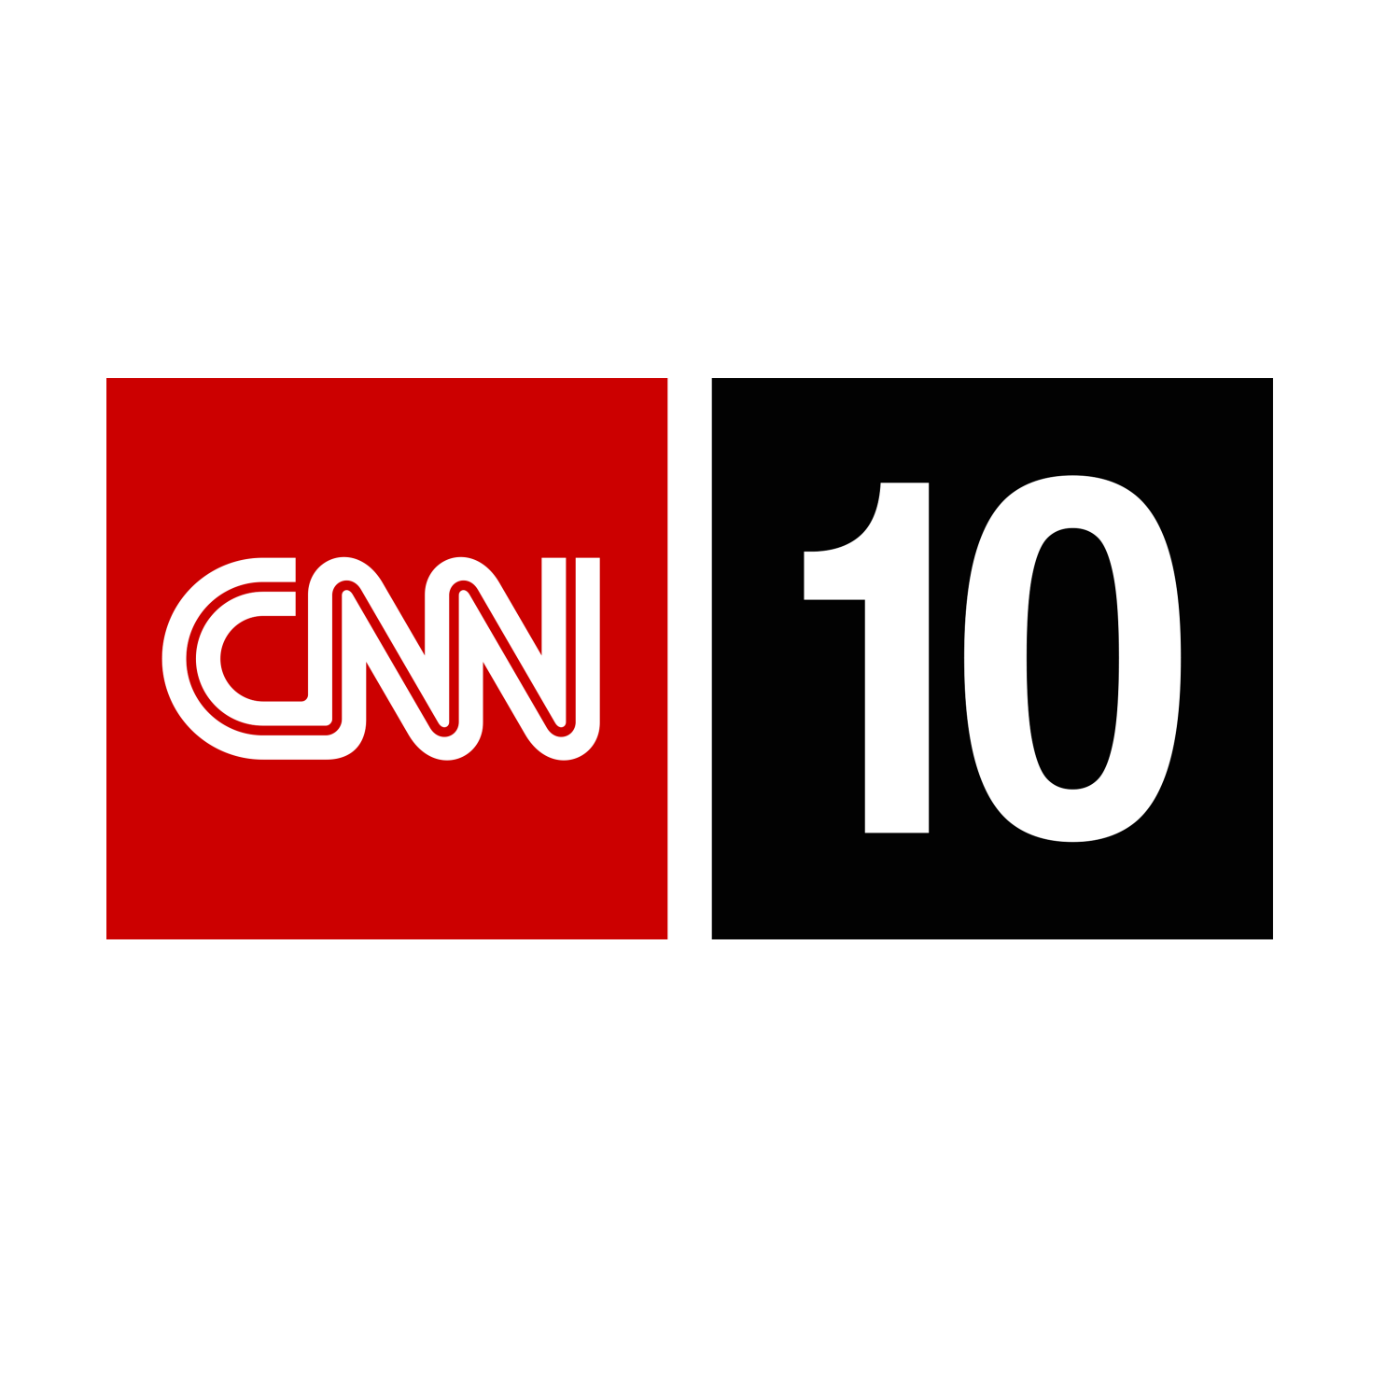 CNN Student News - March 11, 2013